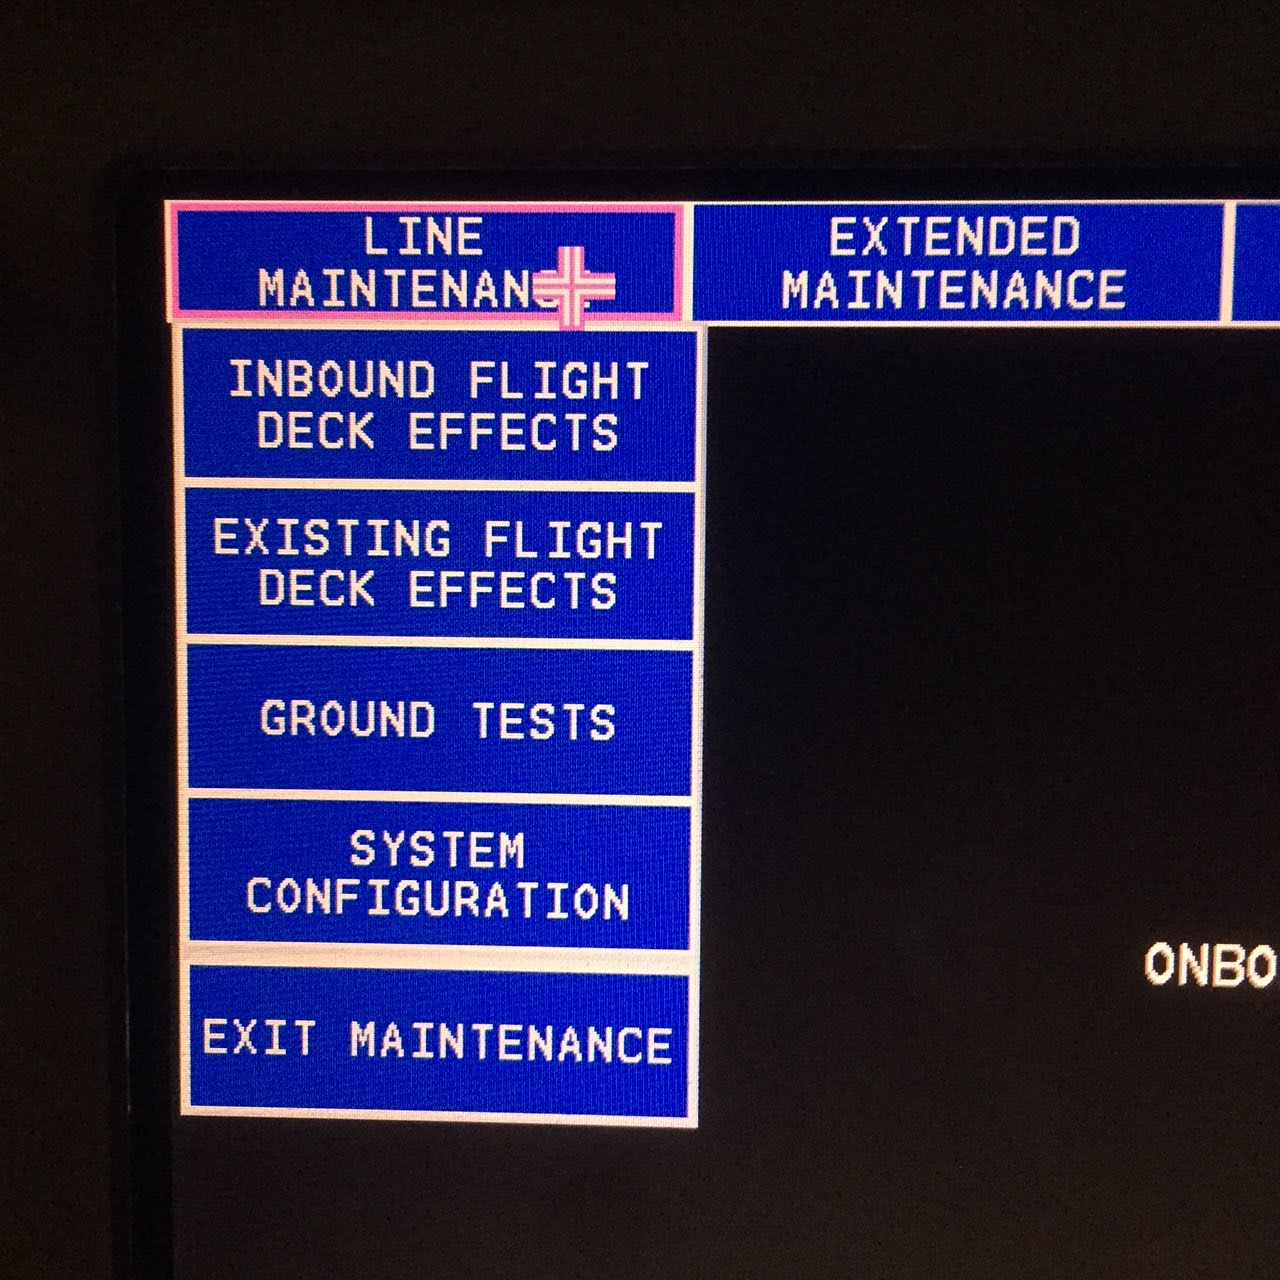 MAT MENU B777 MAINTENANCE ACCESS TERMINAL